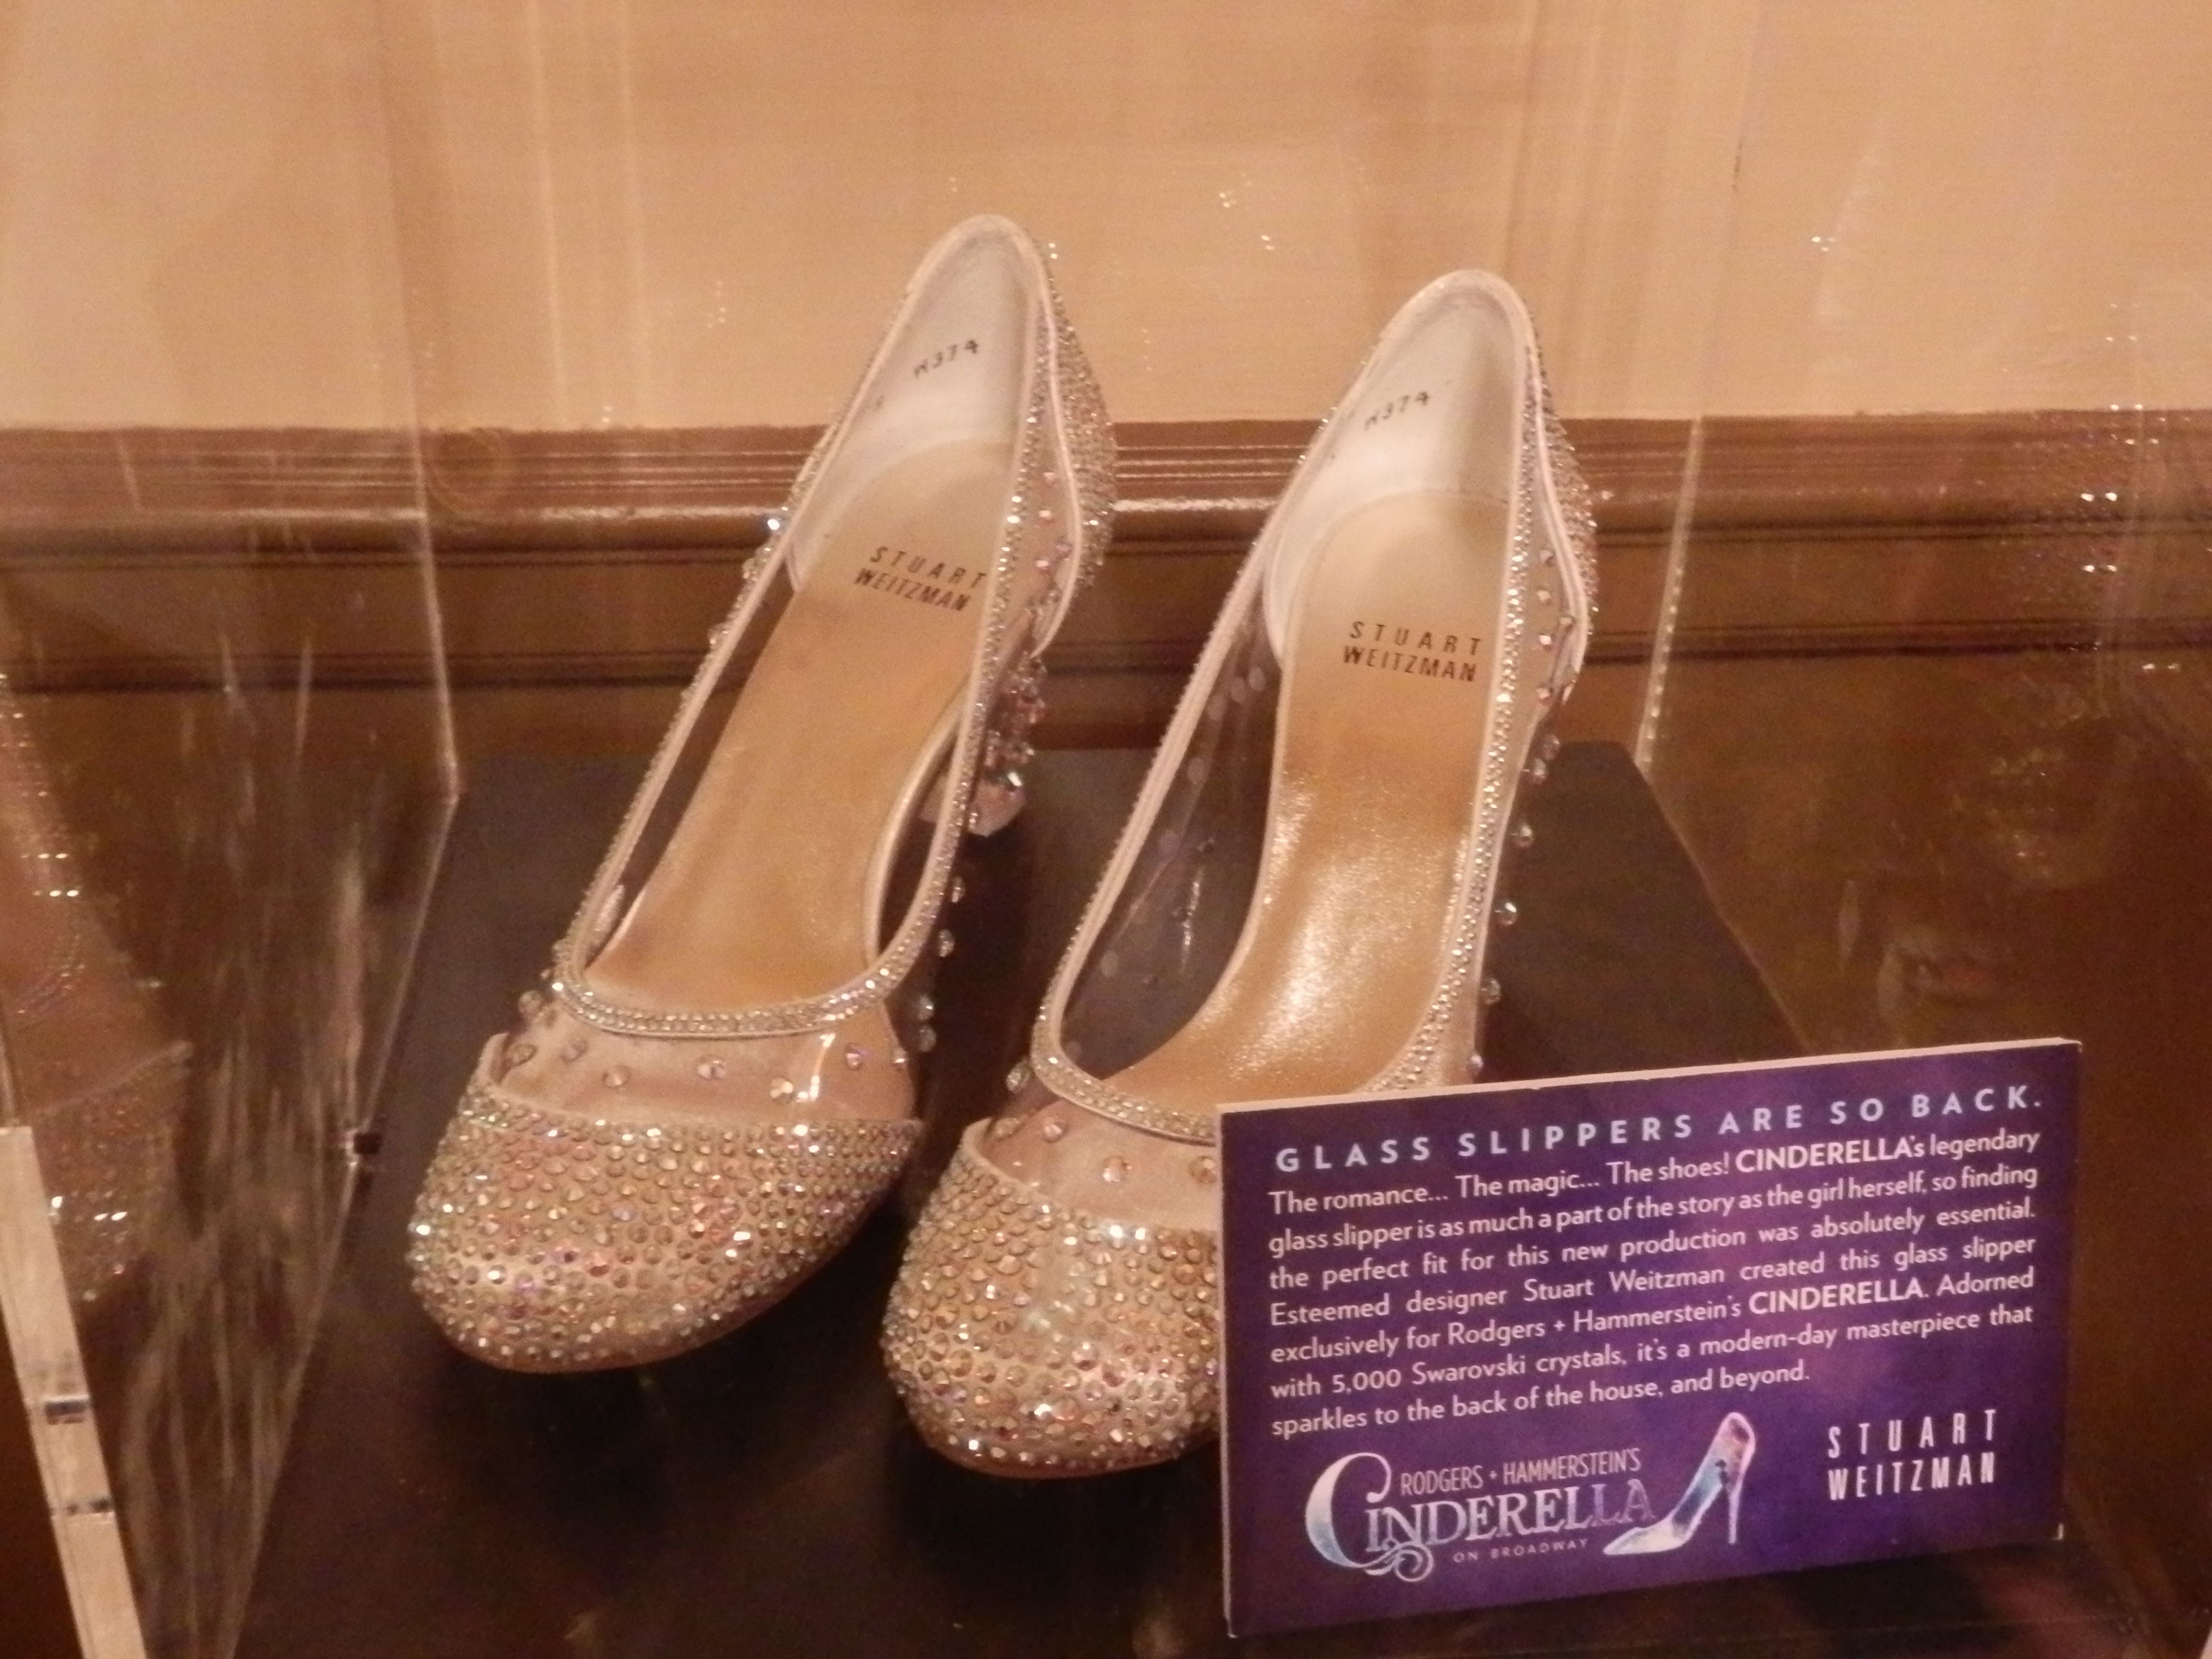 The Actual Custom Designed Glass Slippers By Stuart Weitzman